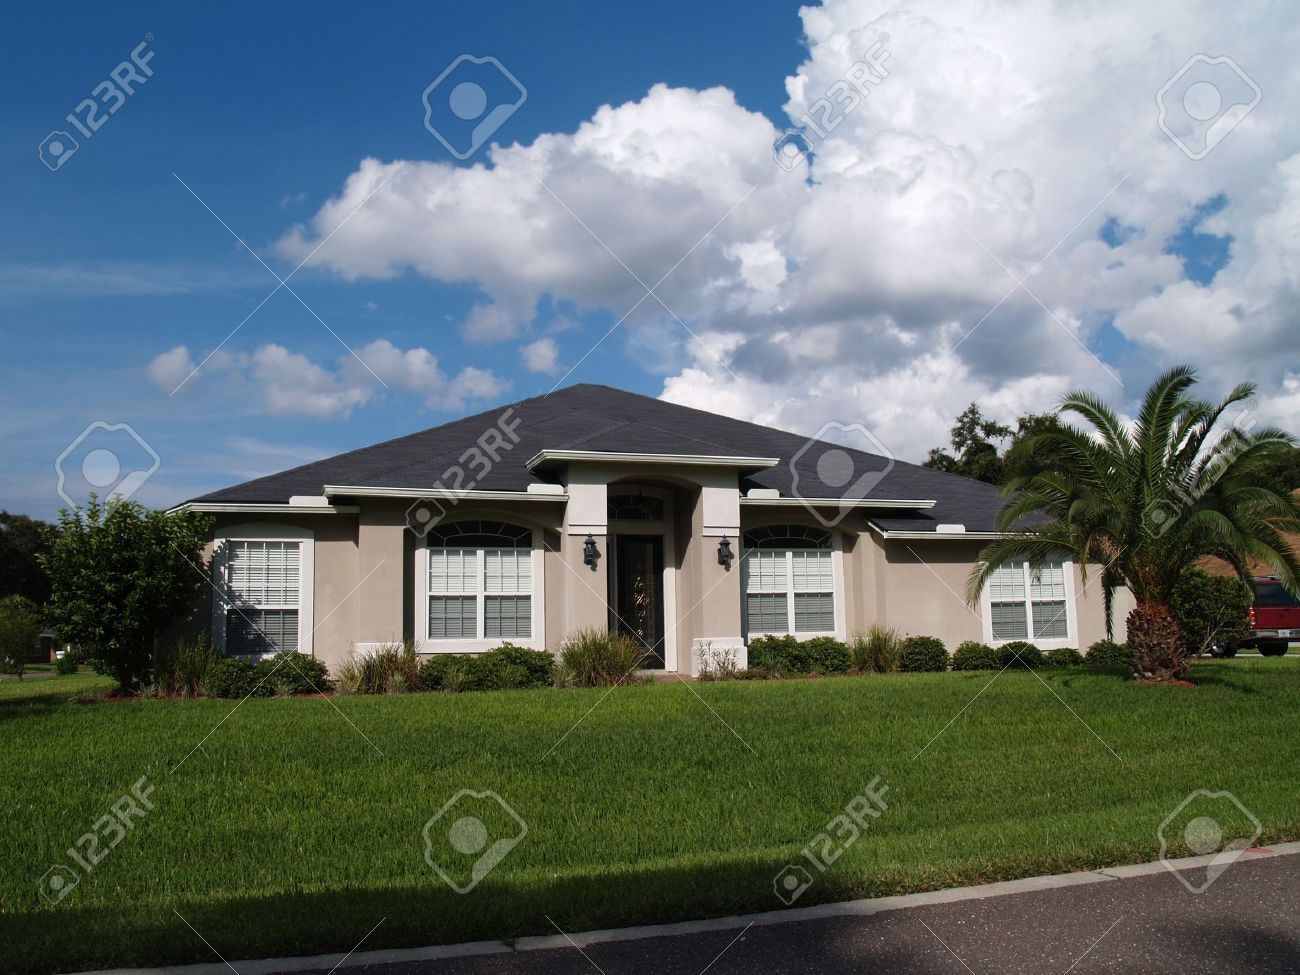 One story Florida home with a stucco facade. Stock Photo - 5580804